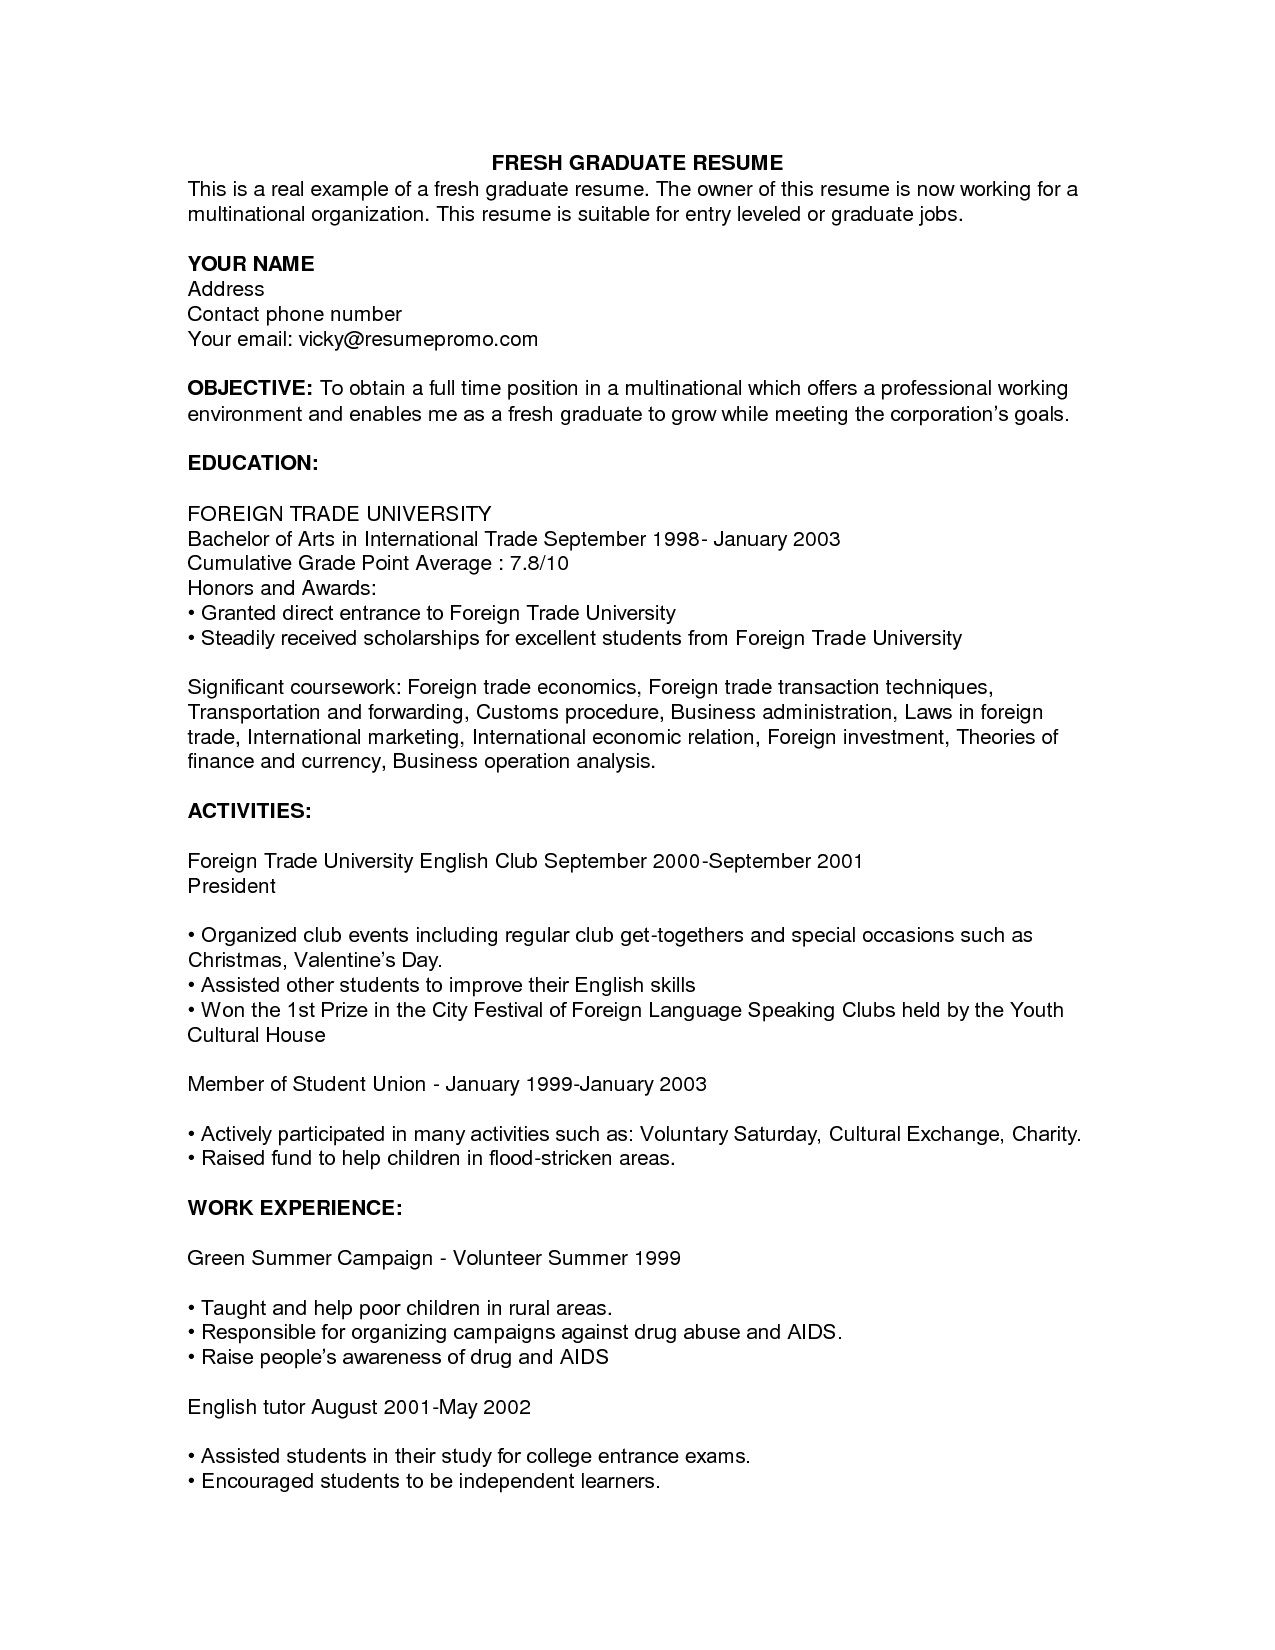 Resume Example For Fresh Graduate In Accounting